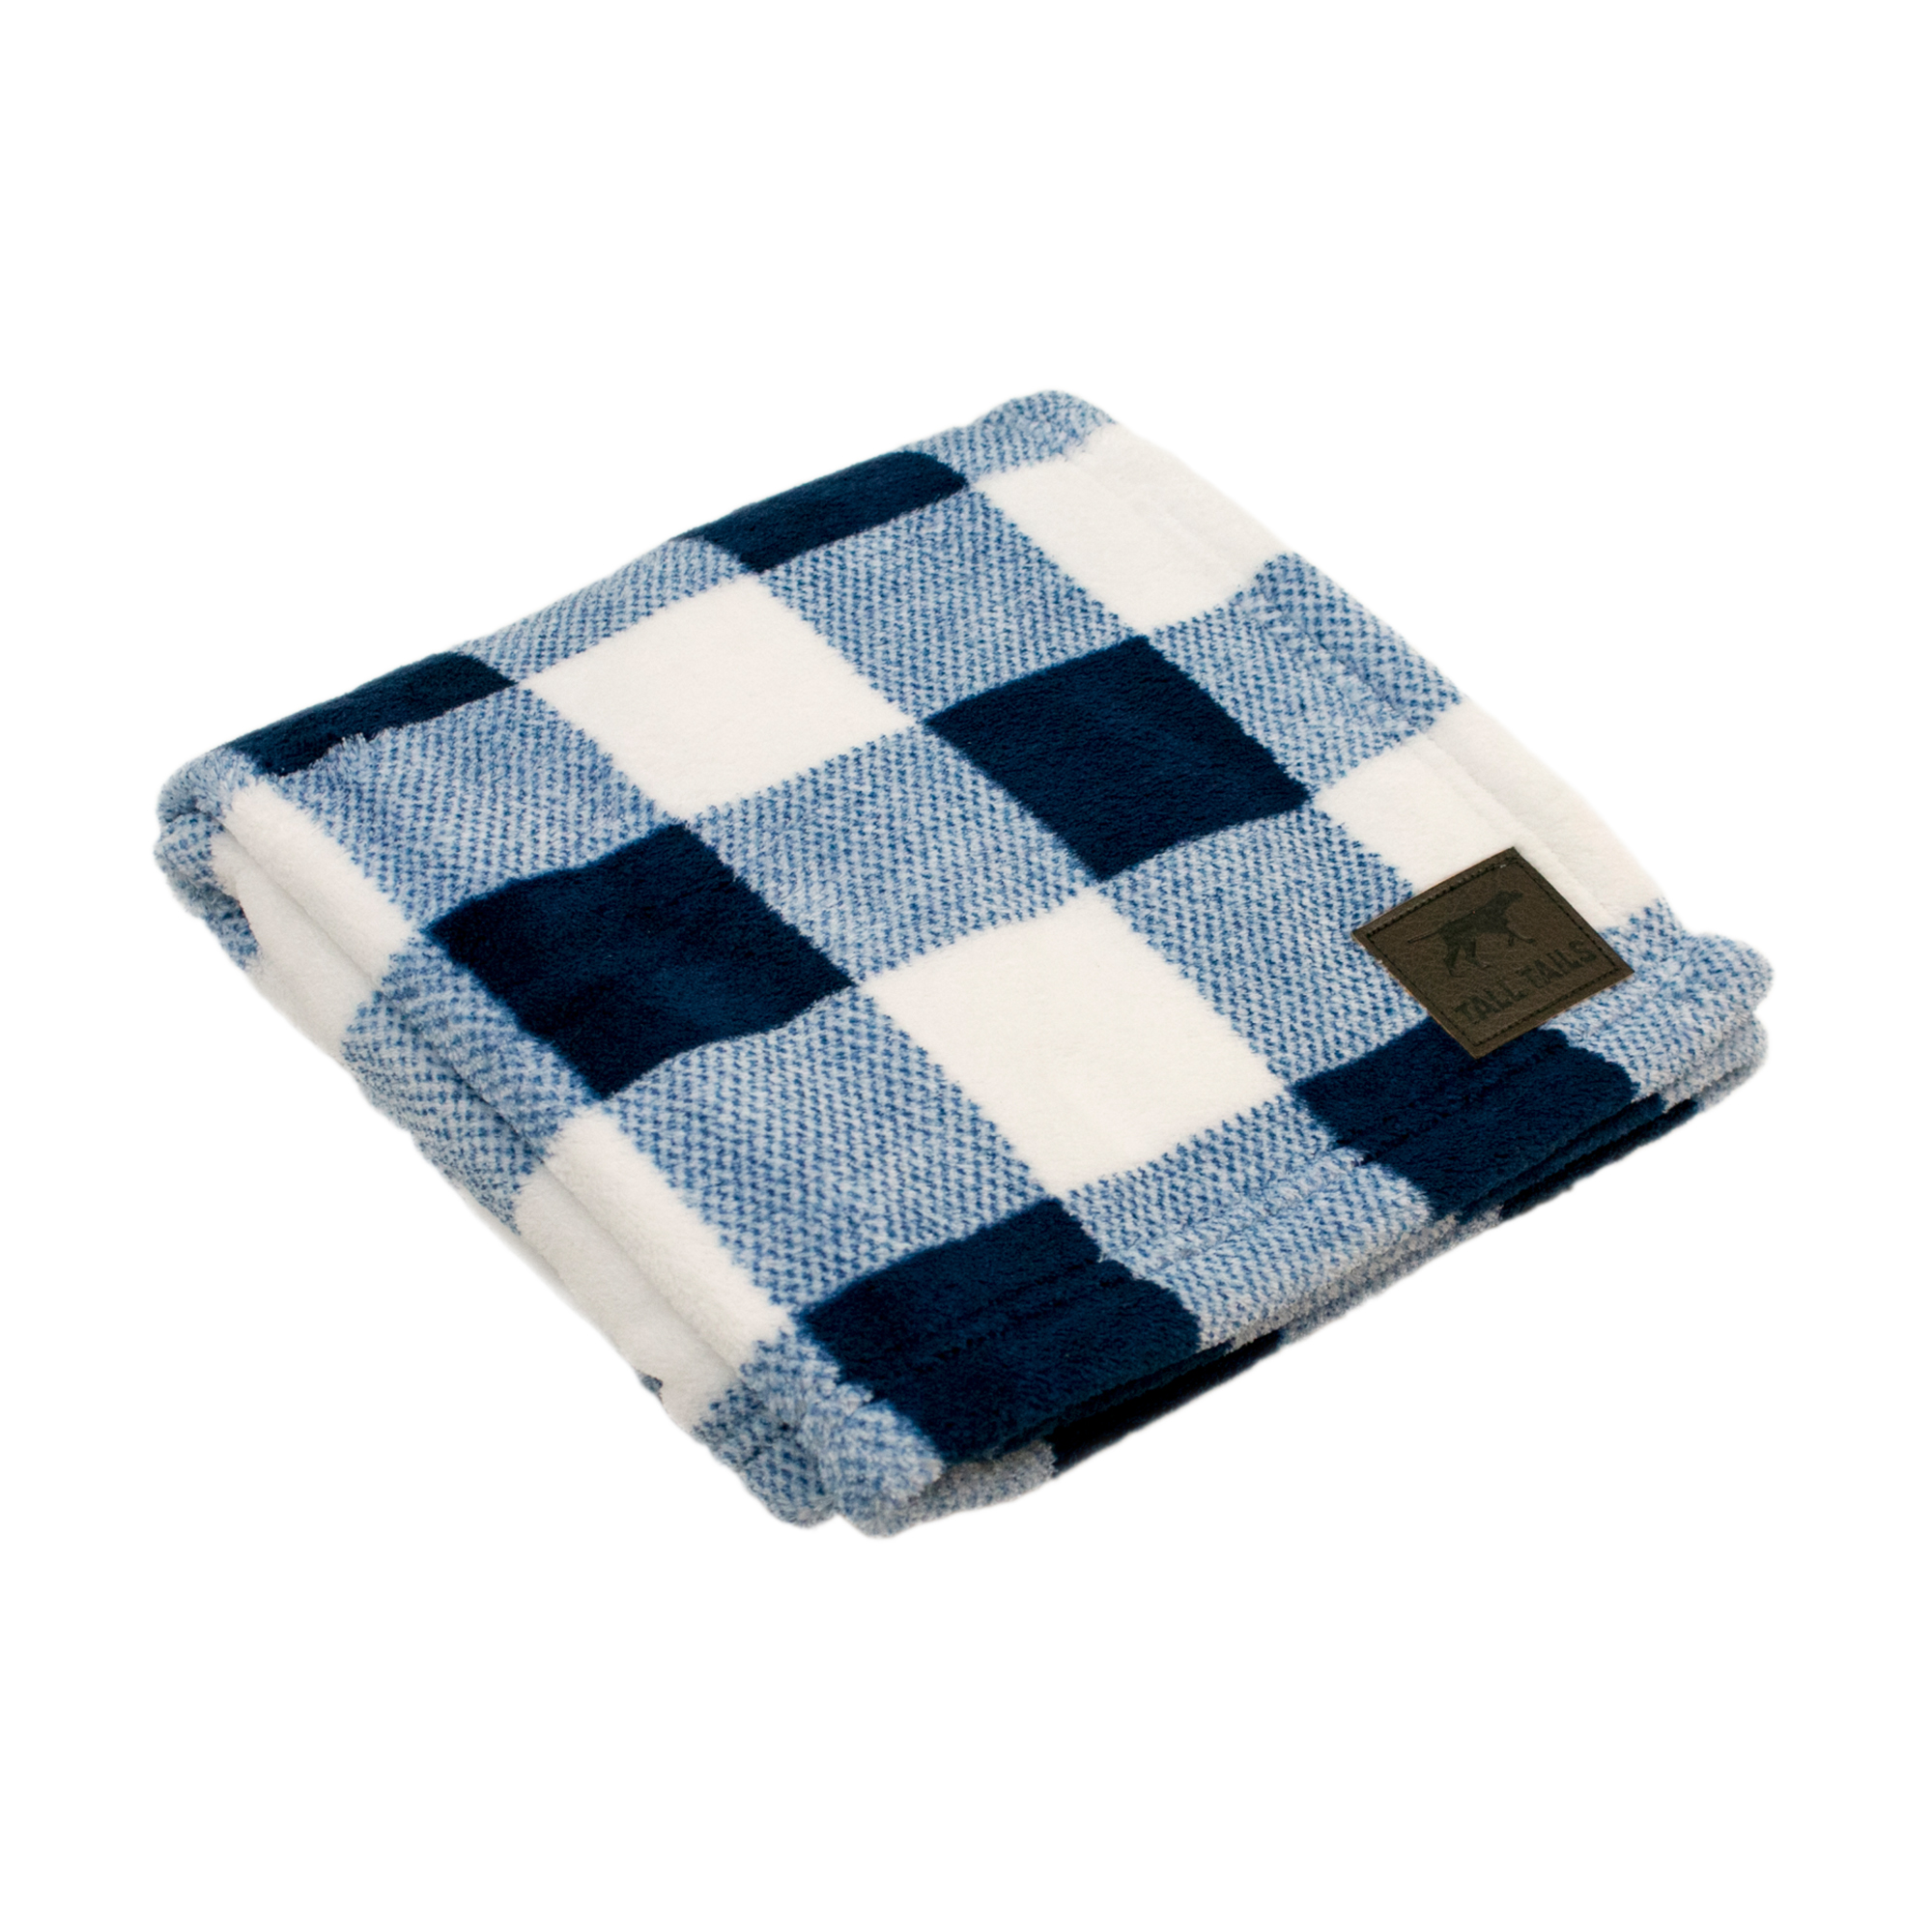 Tall Tails Hunter's Plaid Dog Blanket, Navy, 30x40 (Size: 30x40) Image